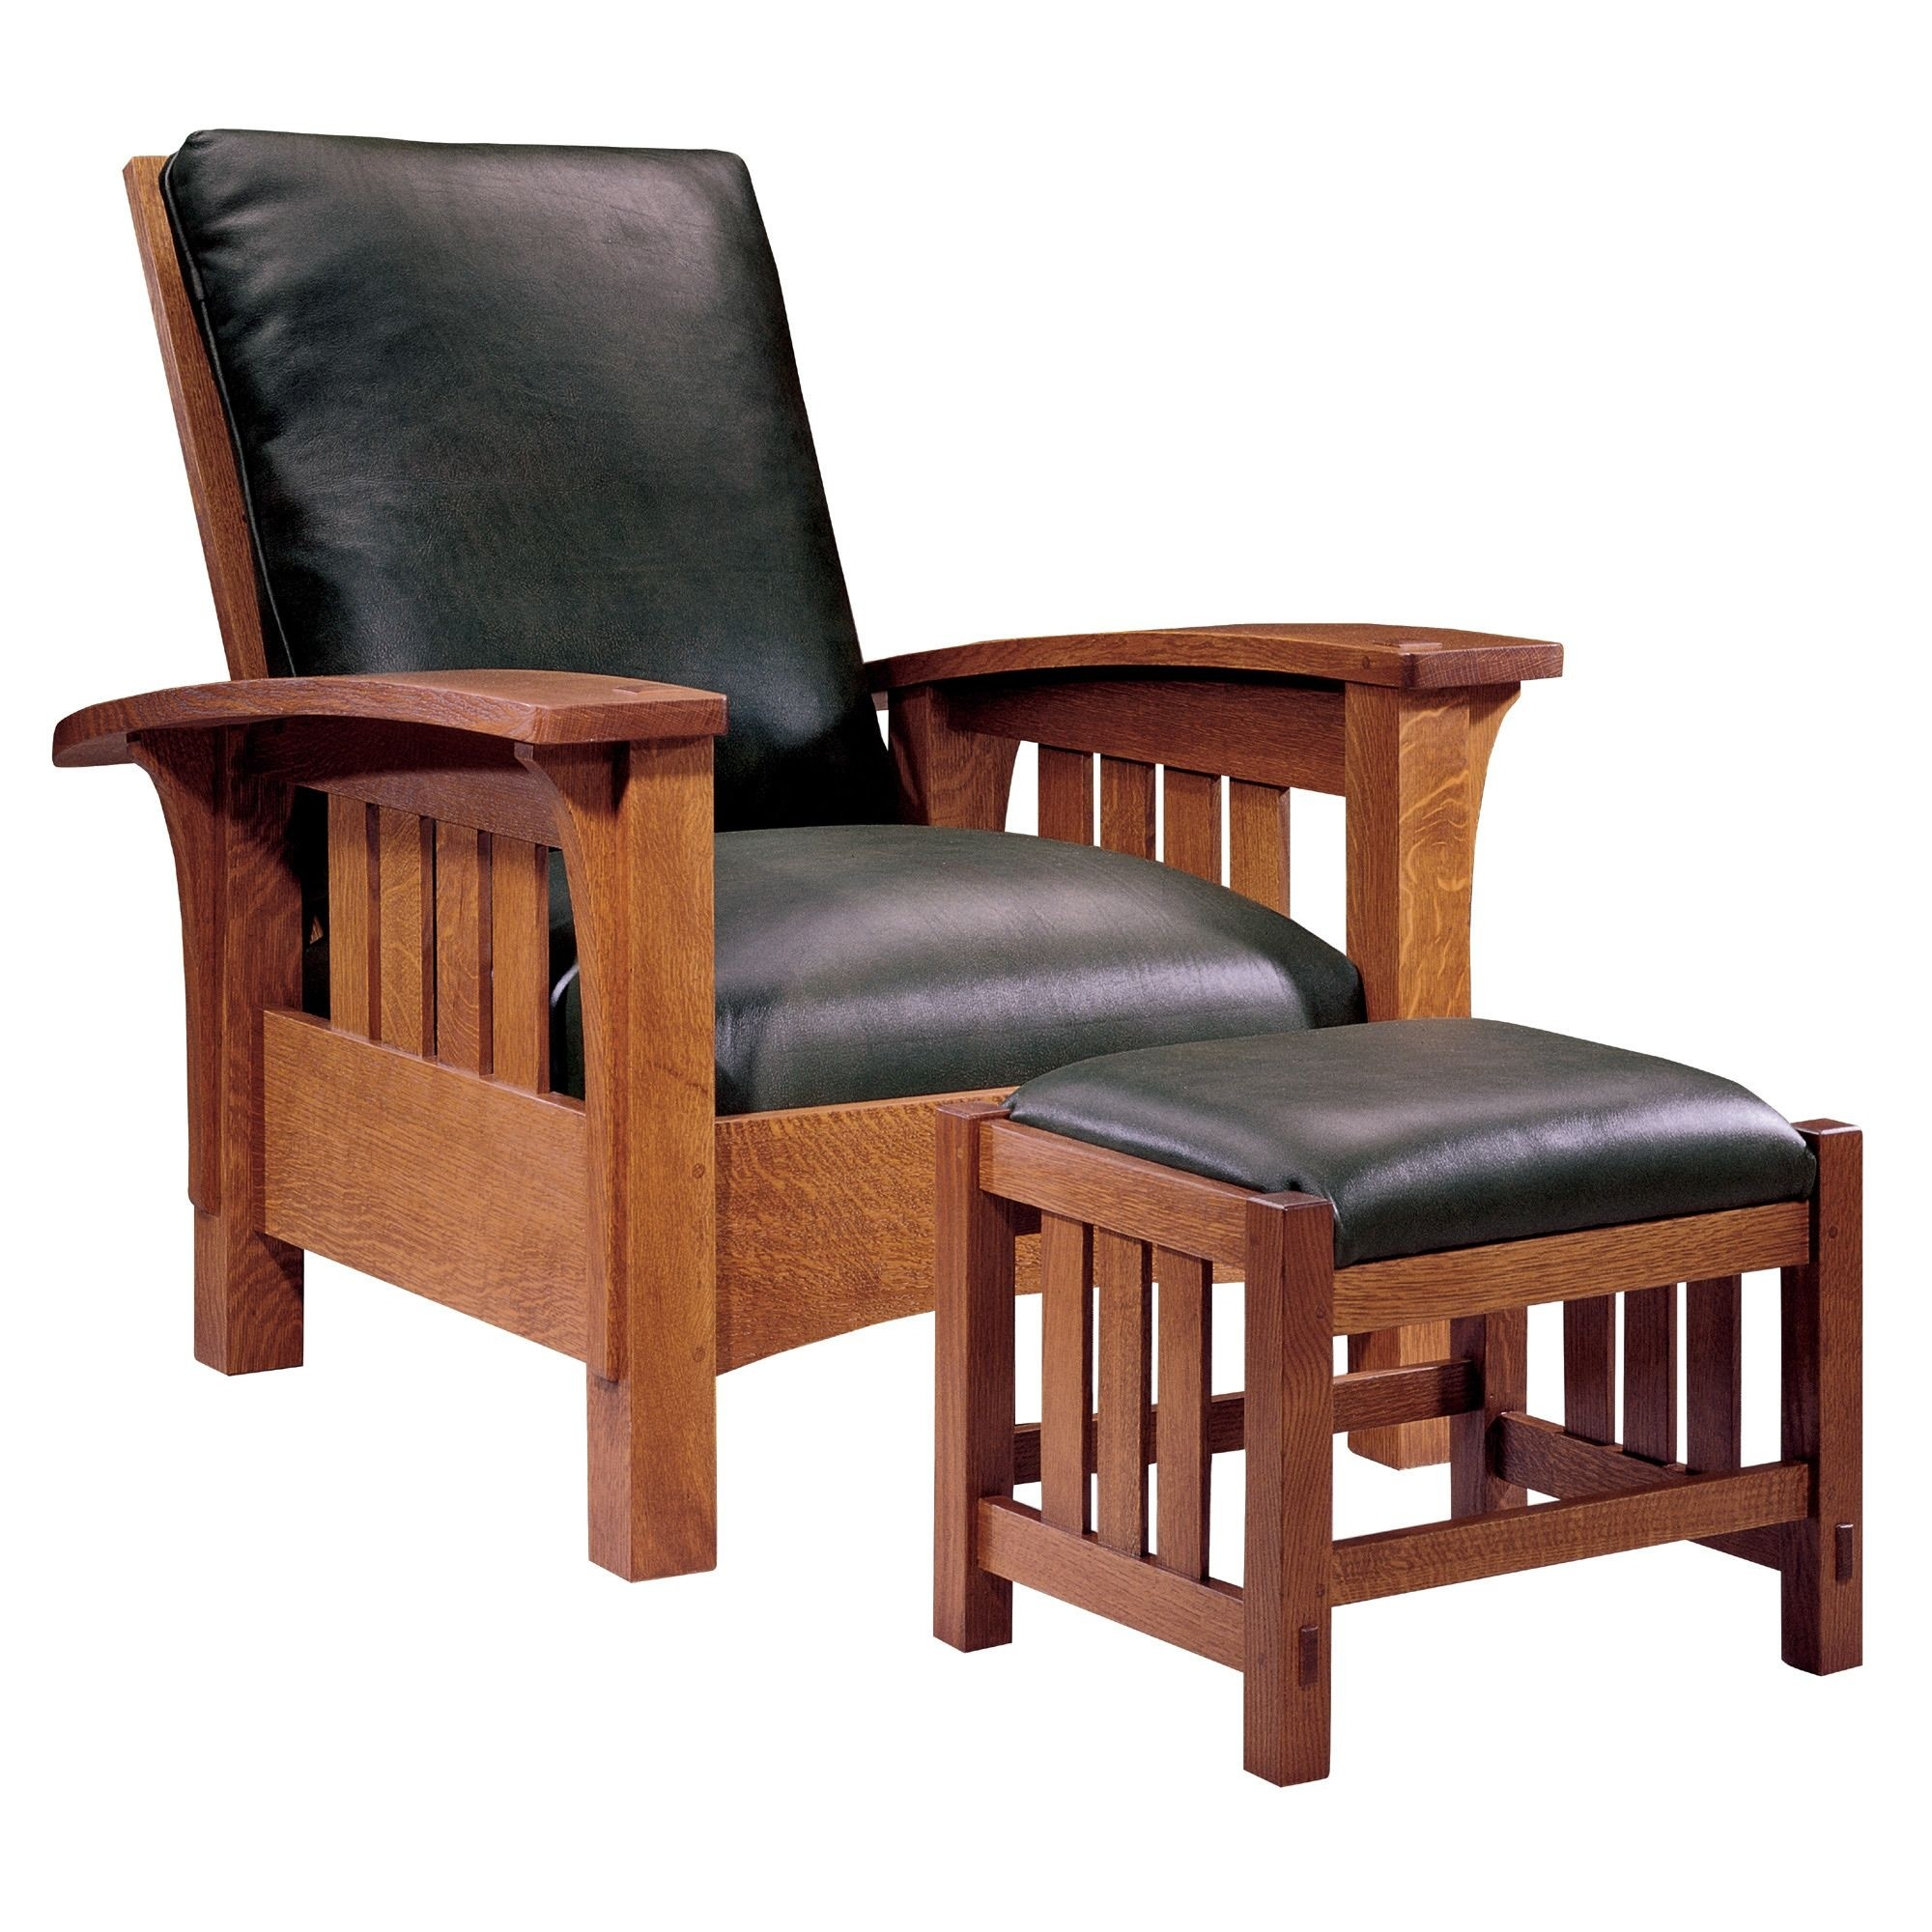 Marvelous Mission Style Arm Chair 1